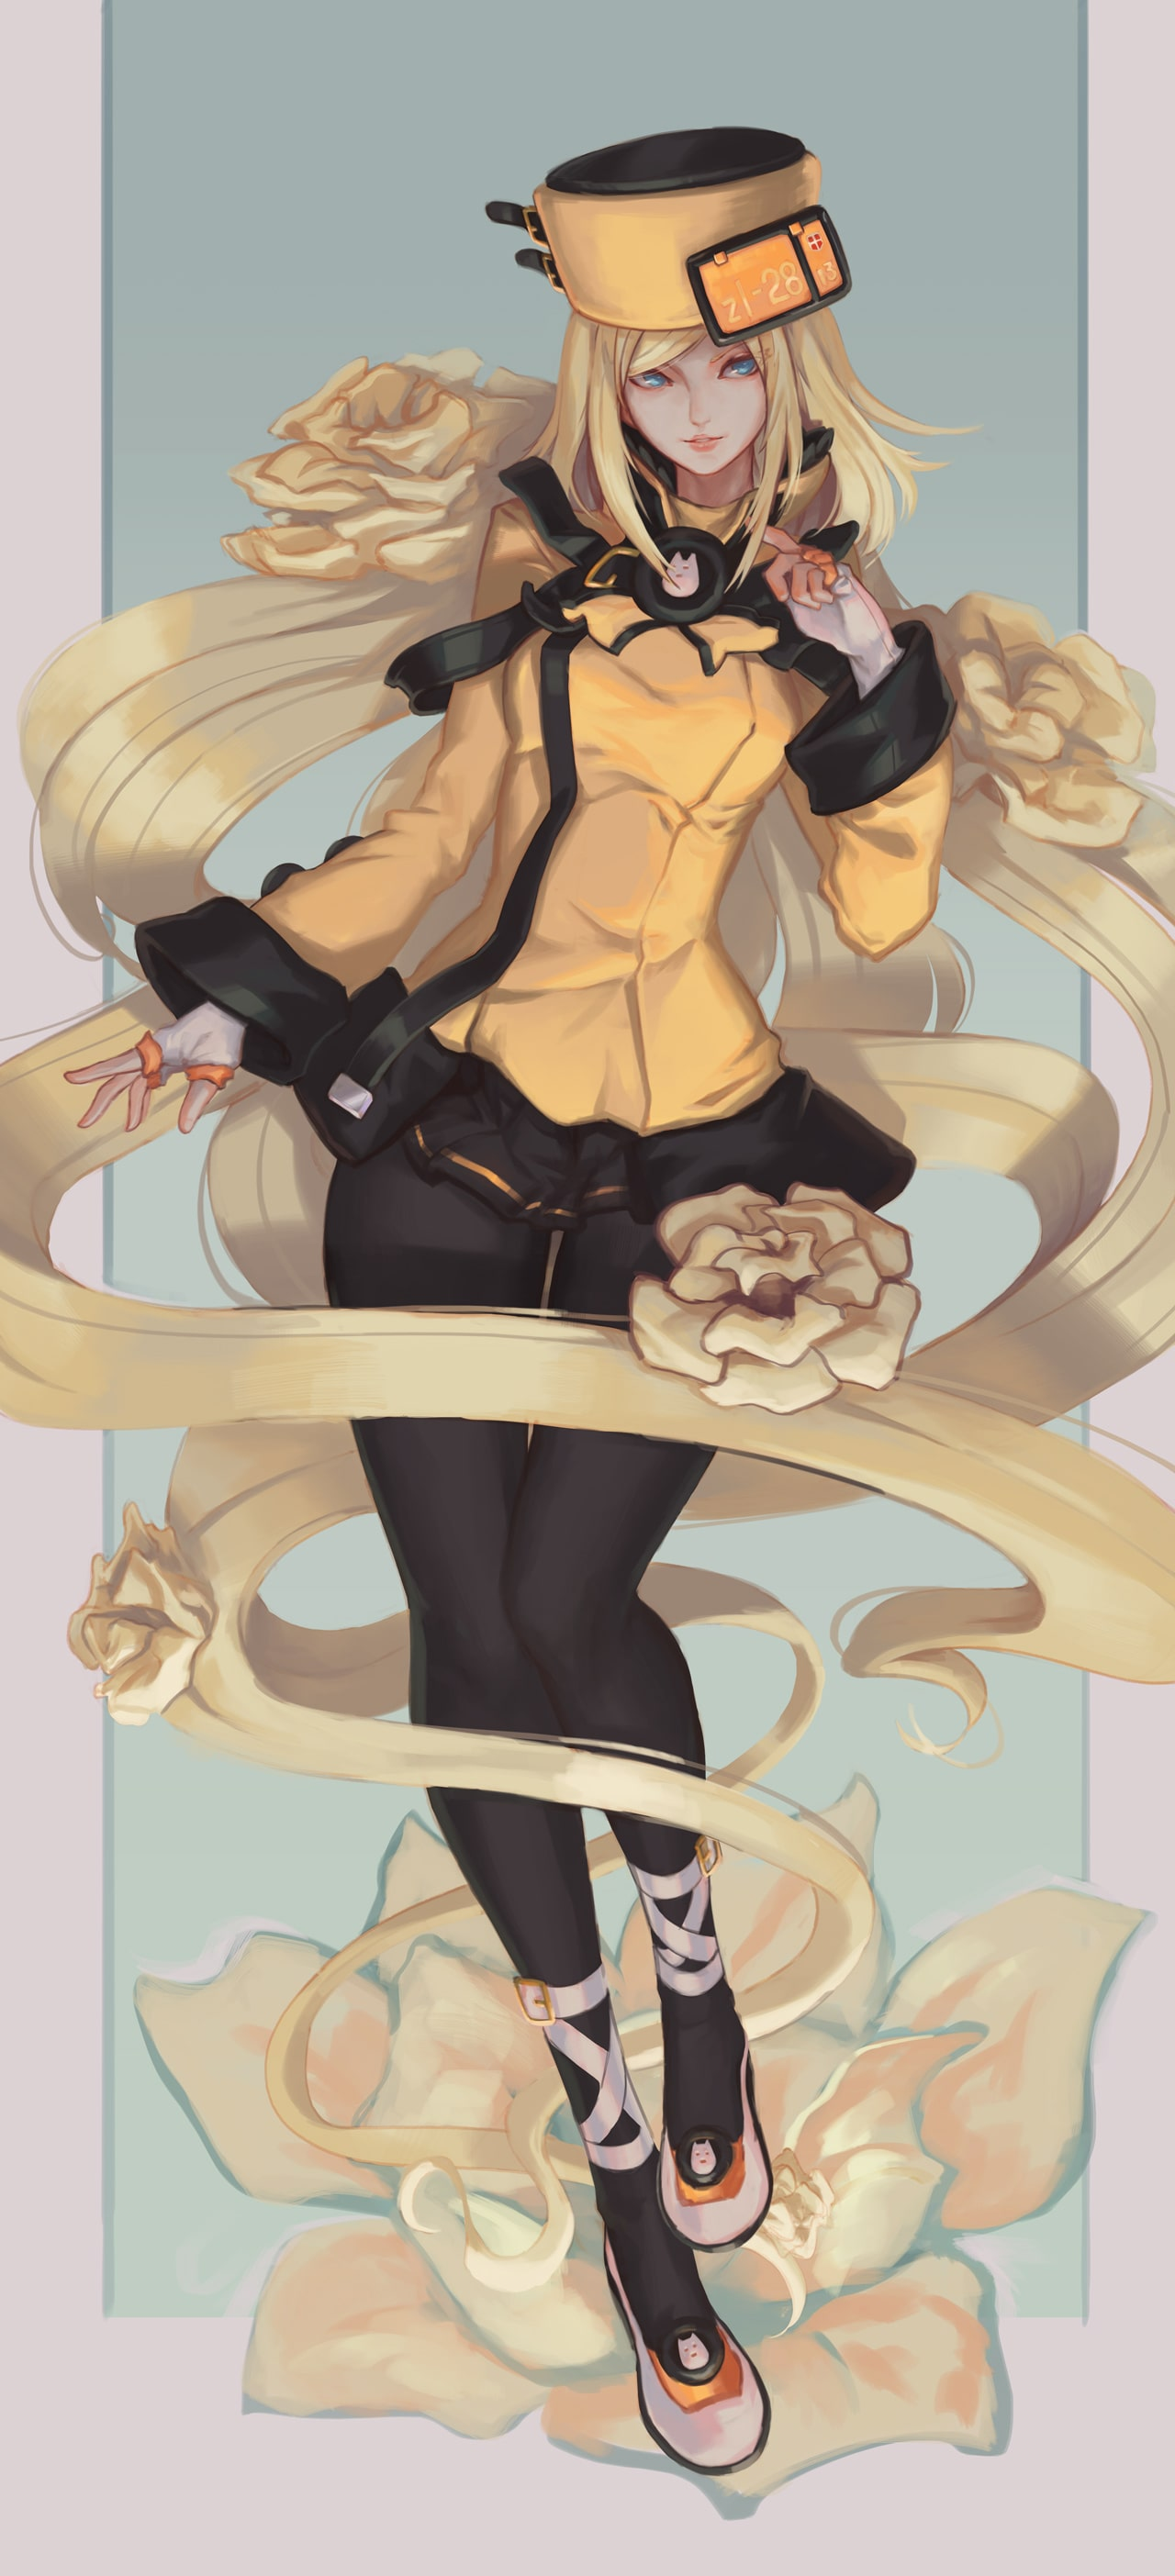 Guilty Gear: Millia Rage For mobile